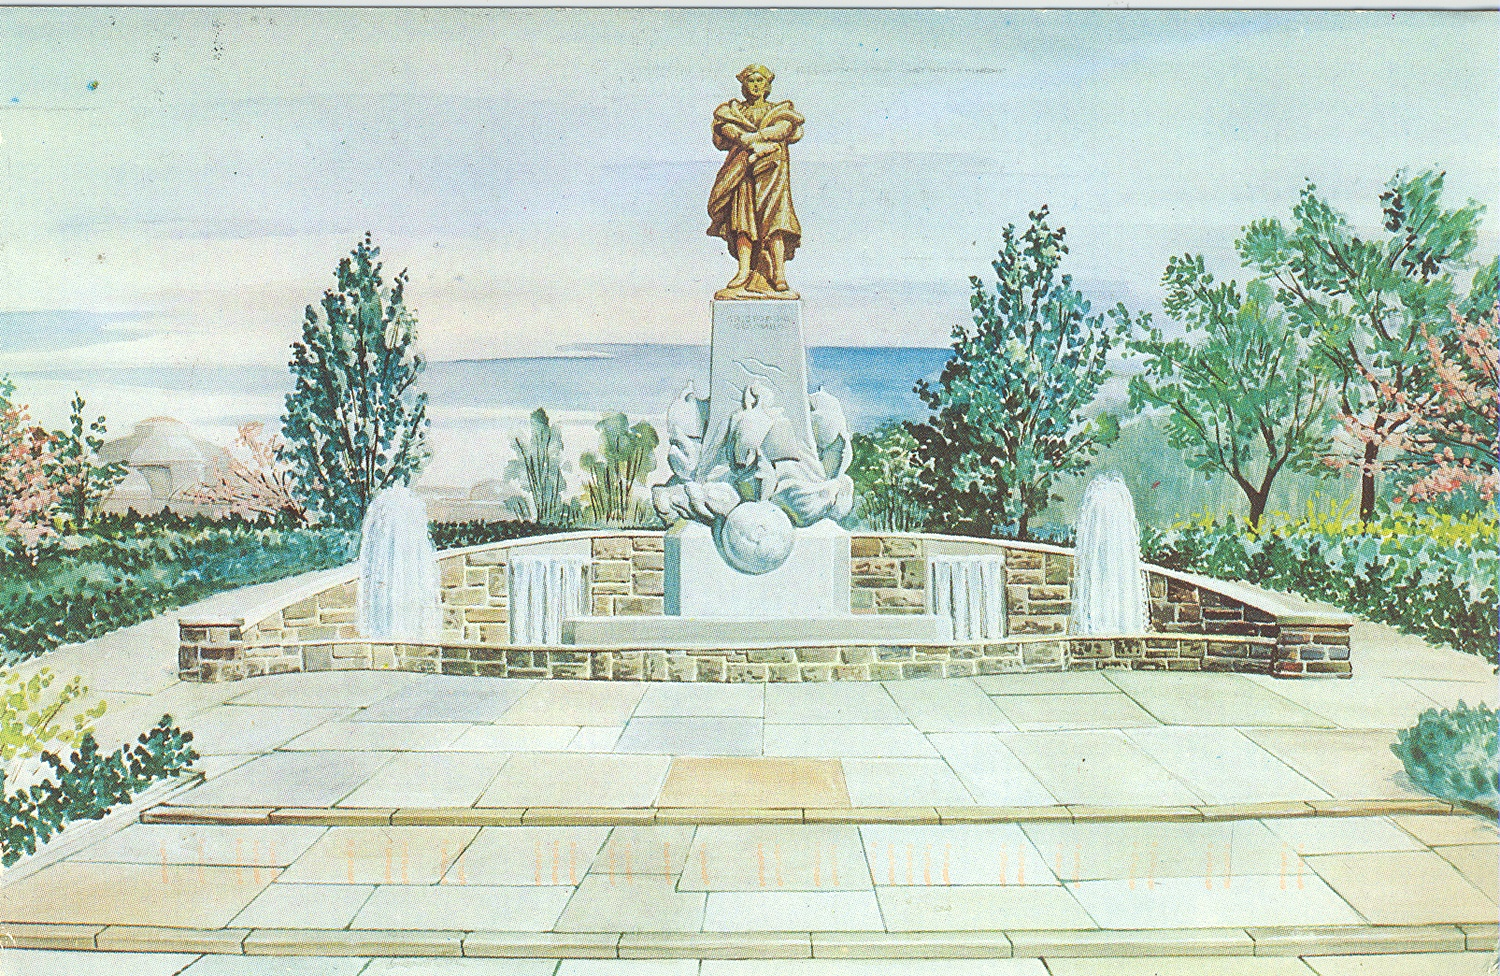 At the time of its dedication in 1958, Pittsburgh's Columbus monument was the second largest in the country. Records in the collection show that the site for the statue in Schenley Park was secured in 1955, though community conversations around the project had been going on for decades. Gift of Joseph D'Andrea